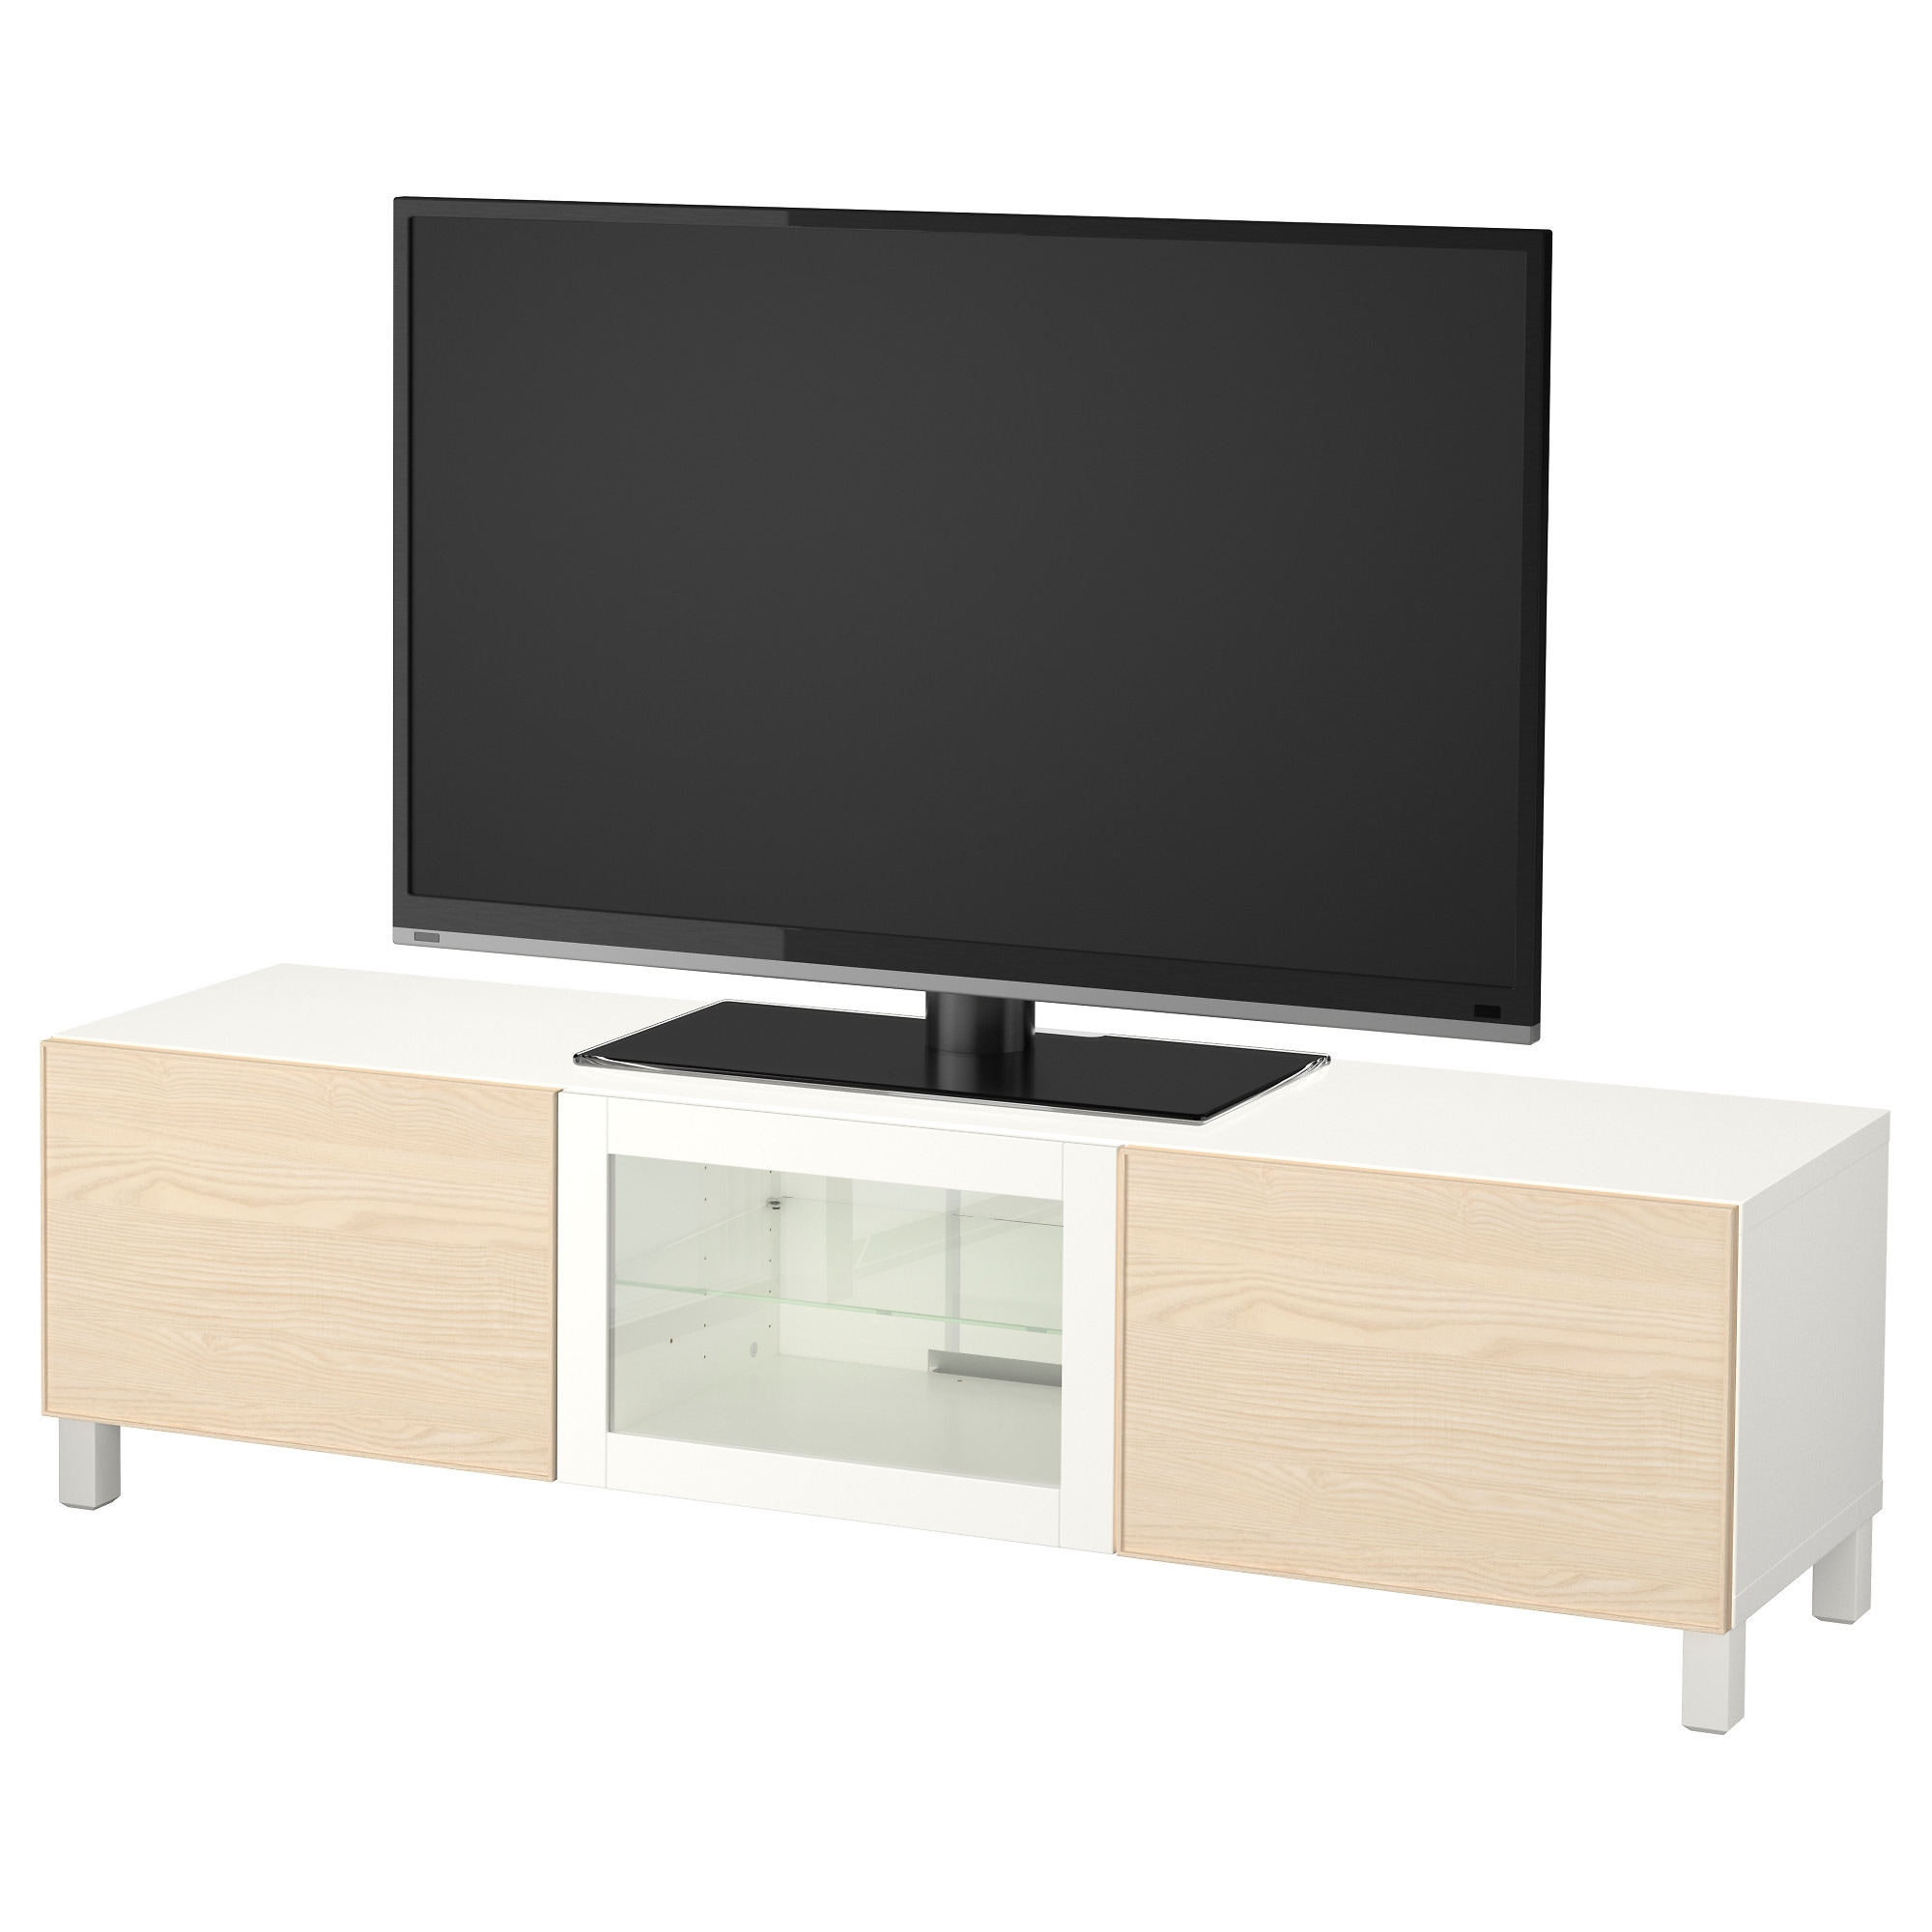 Meuble Tv Wenge Ikea Perfect Meuble Tv Led Ikea Full Size Of  # Meuble Tv Avec Potence